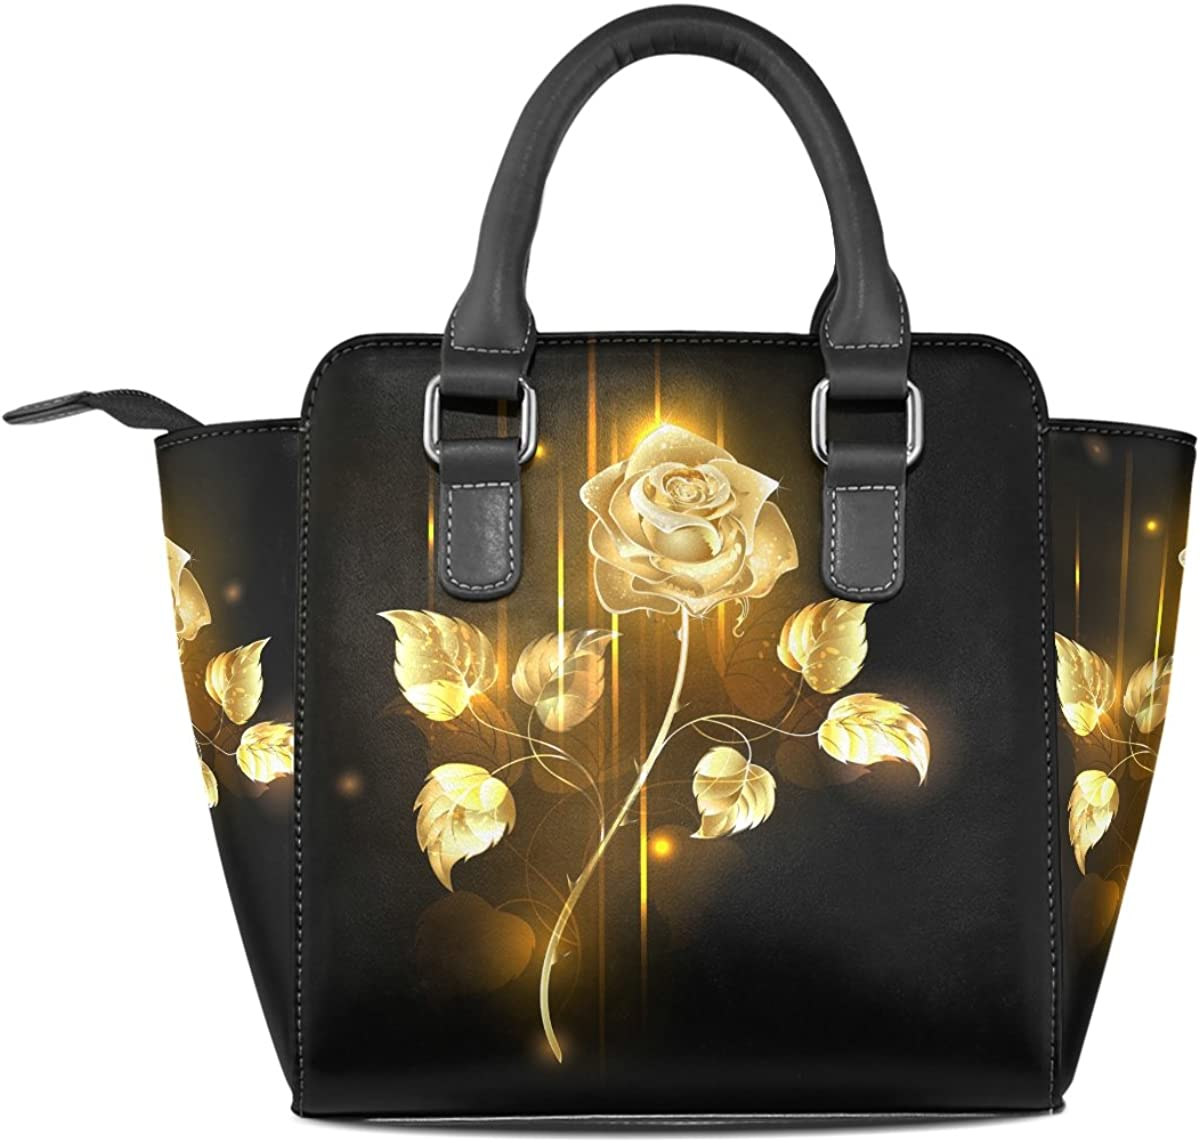 Jennifer PU Leather Top-Handle Handbags Flaming Golden Rose Flower Single-Shoulder Tote Crossbody Bag Messenger Bags For Women